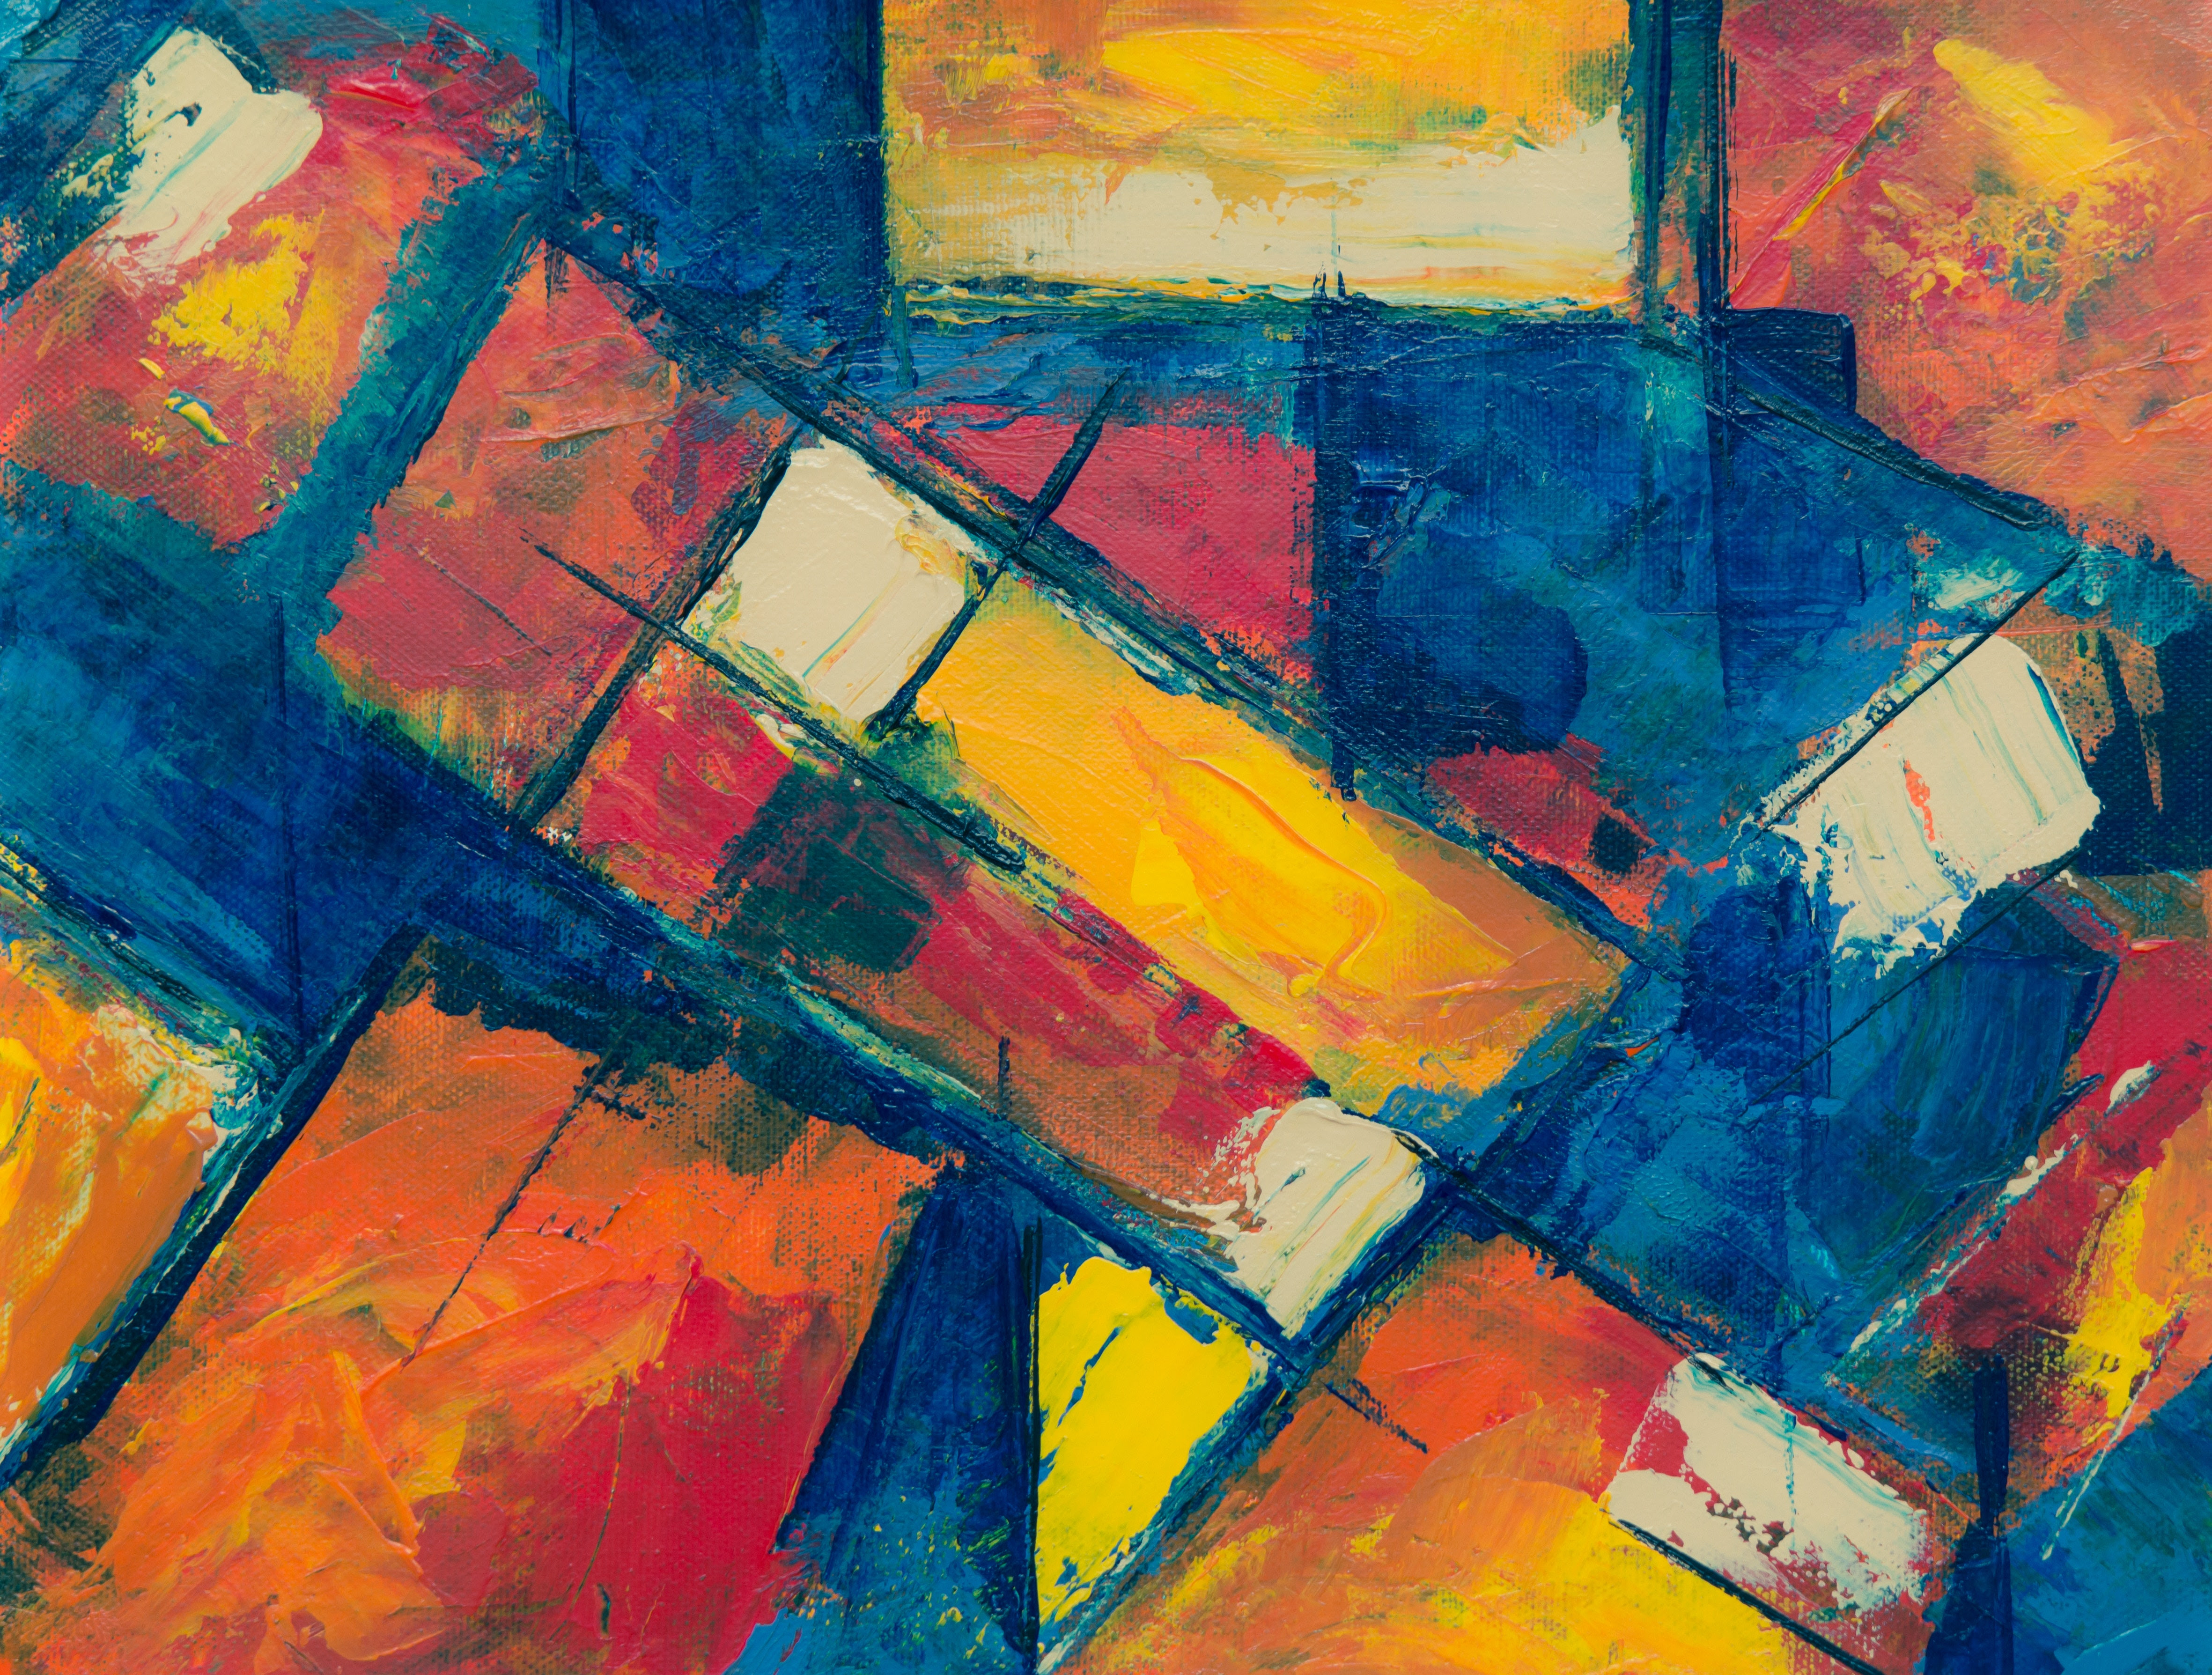 Abstract Painting  C2 B7 Free Stock Photo